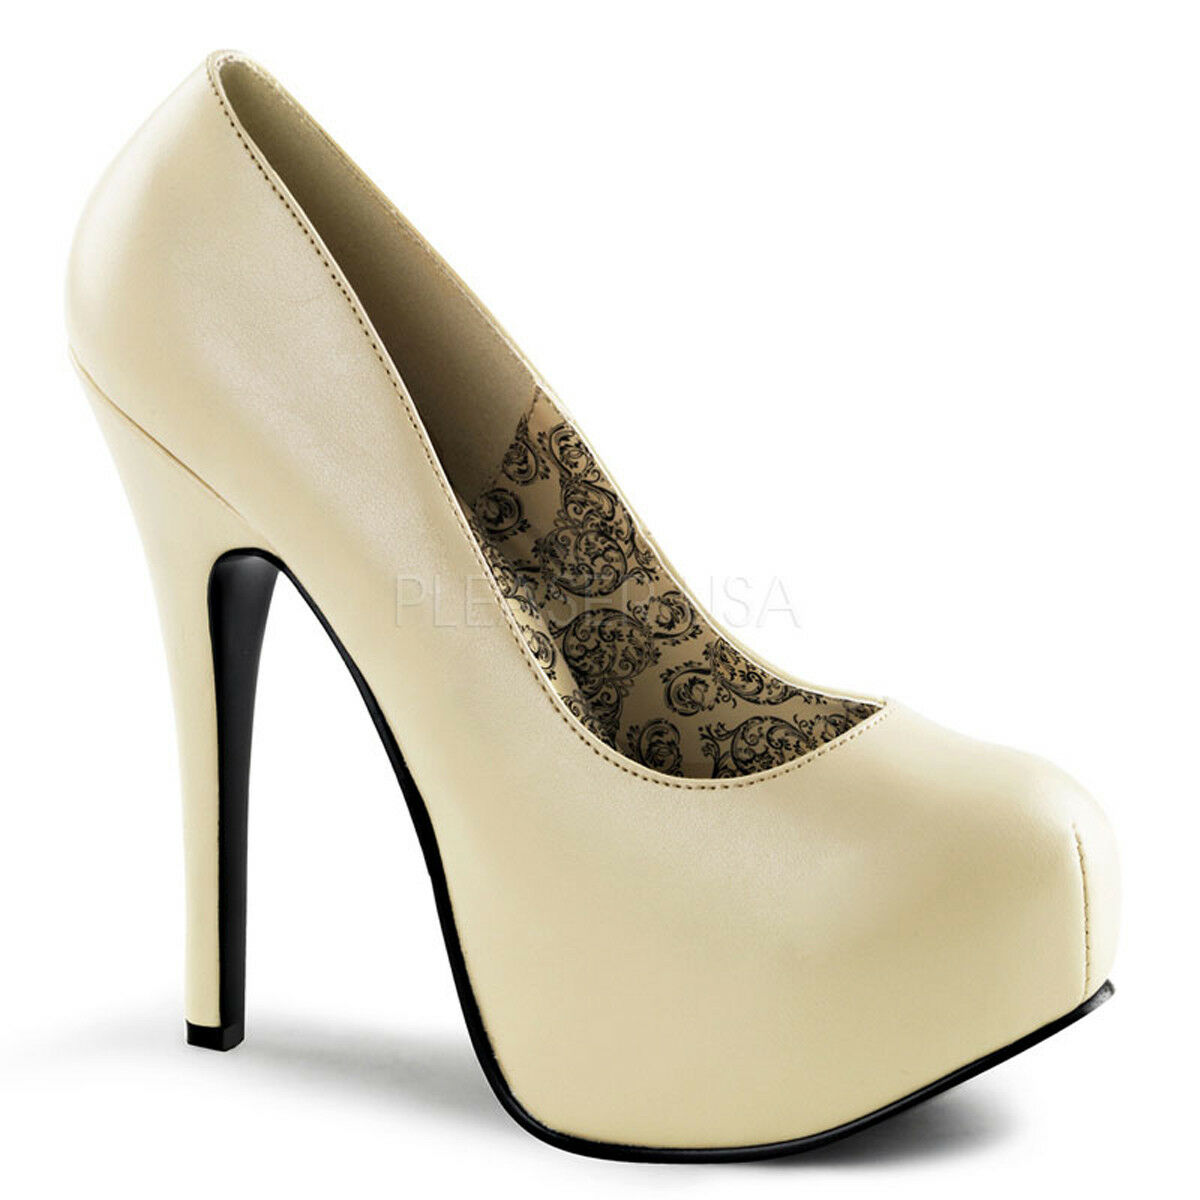 Bordello TEEZE-06 Women's Cream Pu High Heel Closed Concealed Toe Concealed Closed Platform Pumps 699900